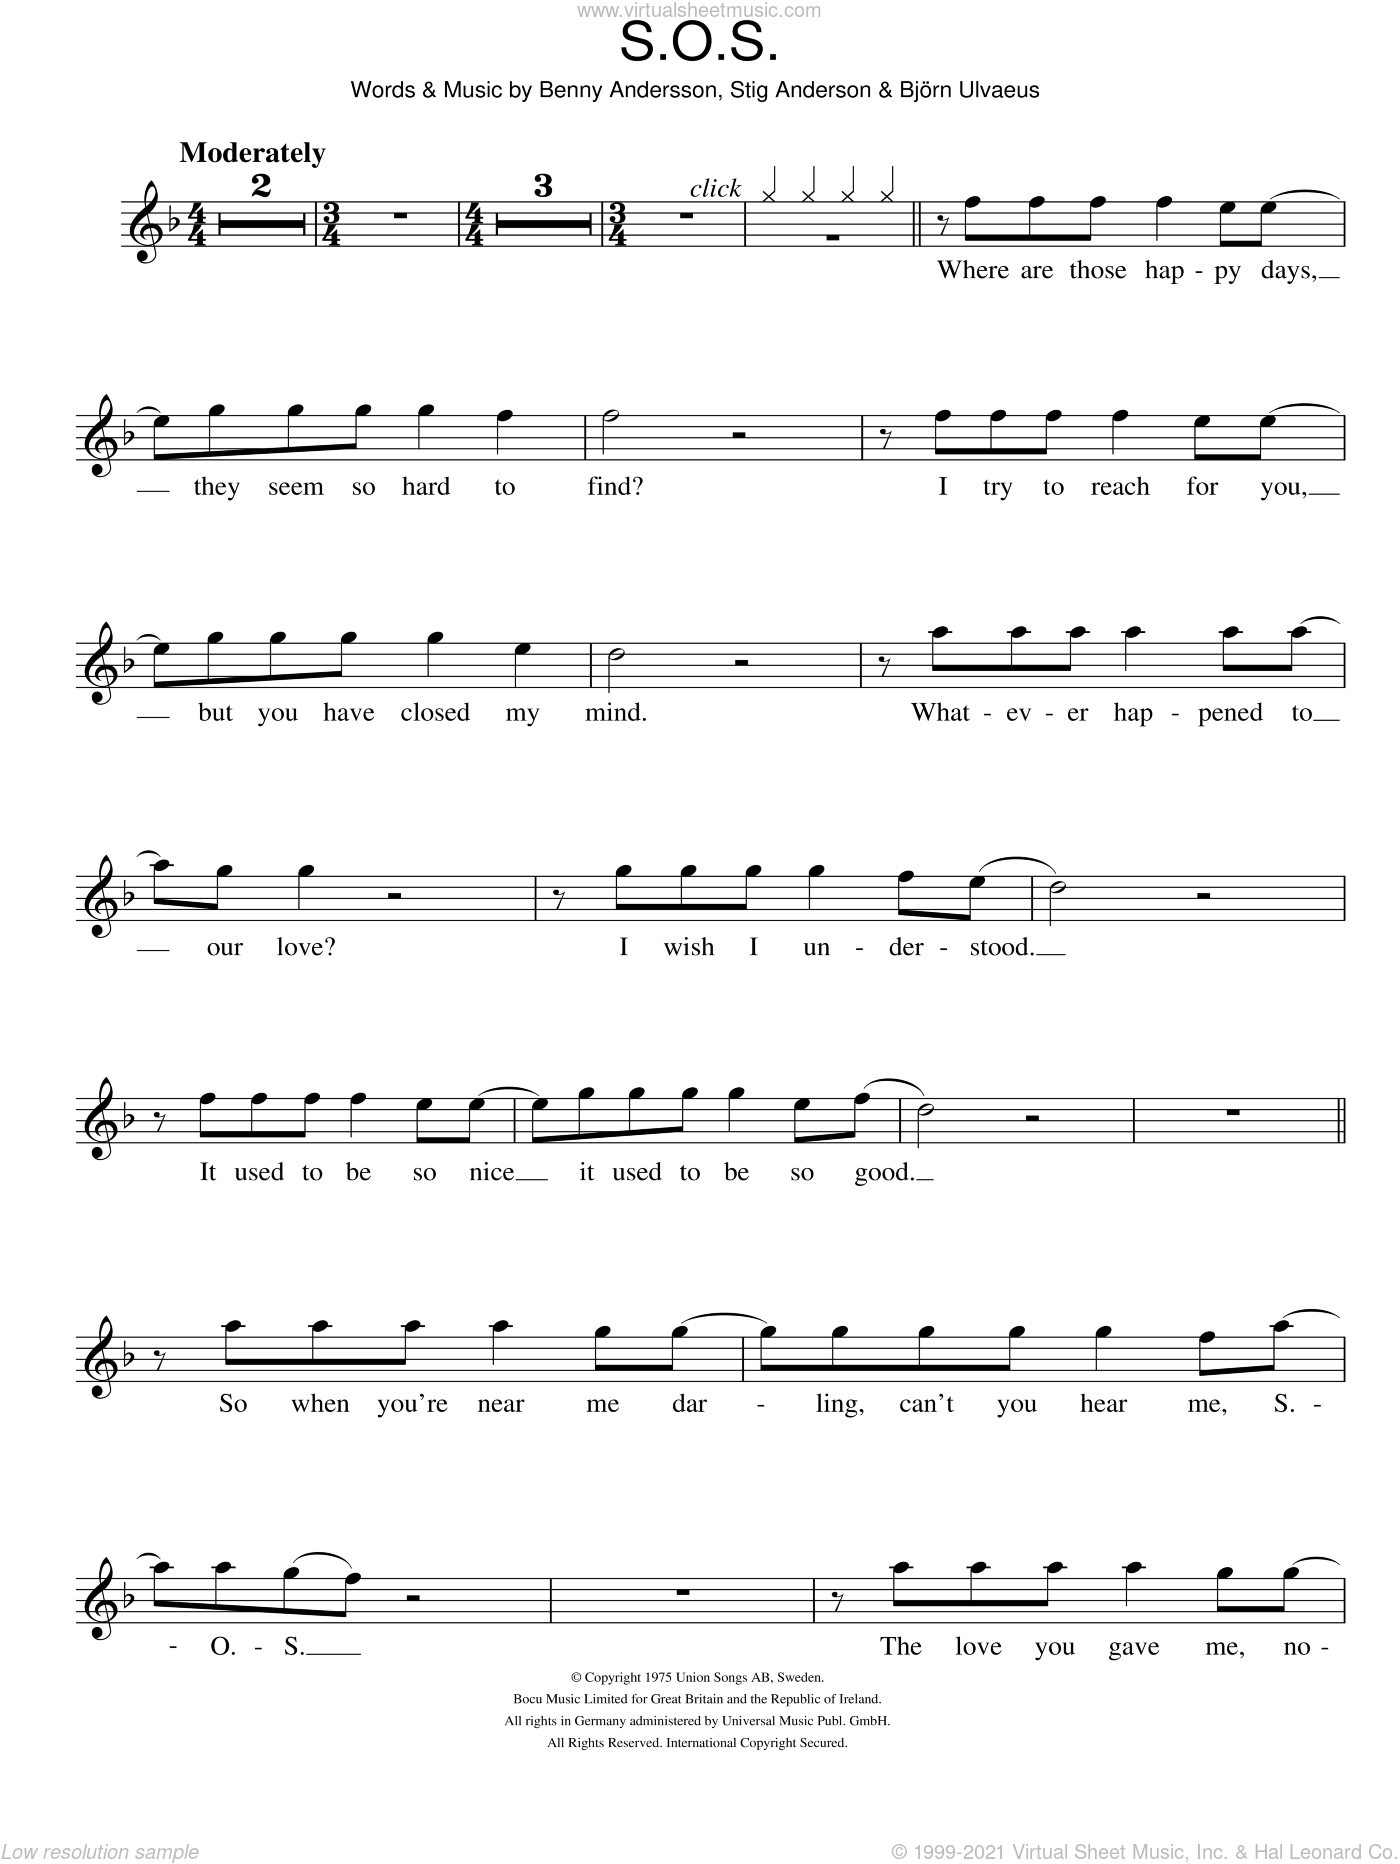 S.O.S. sheet music for flute solo by ABBA, Benny Andersson, Bjorn Ulvaeus and Stig Anderson, intermediate